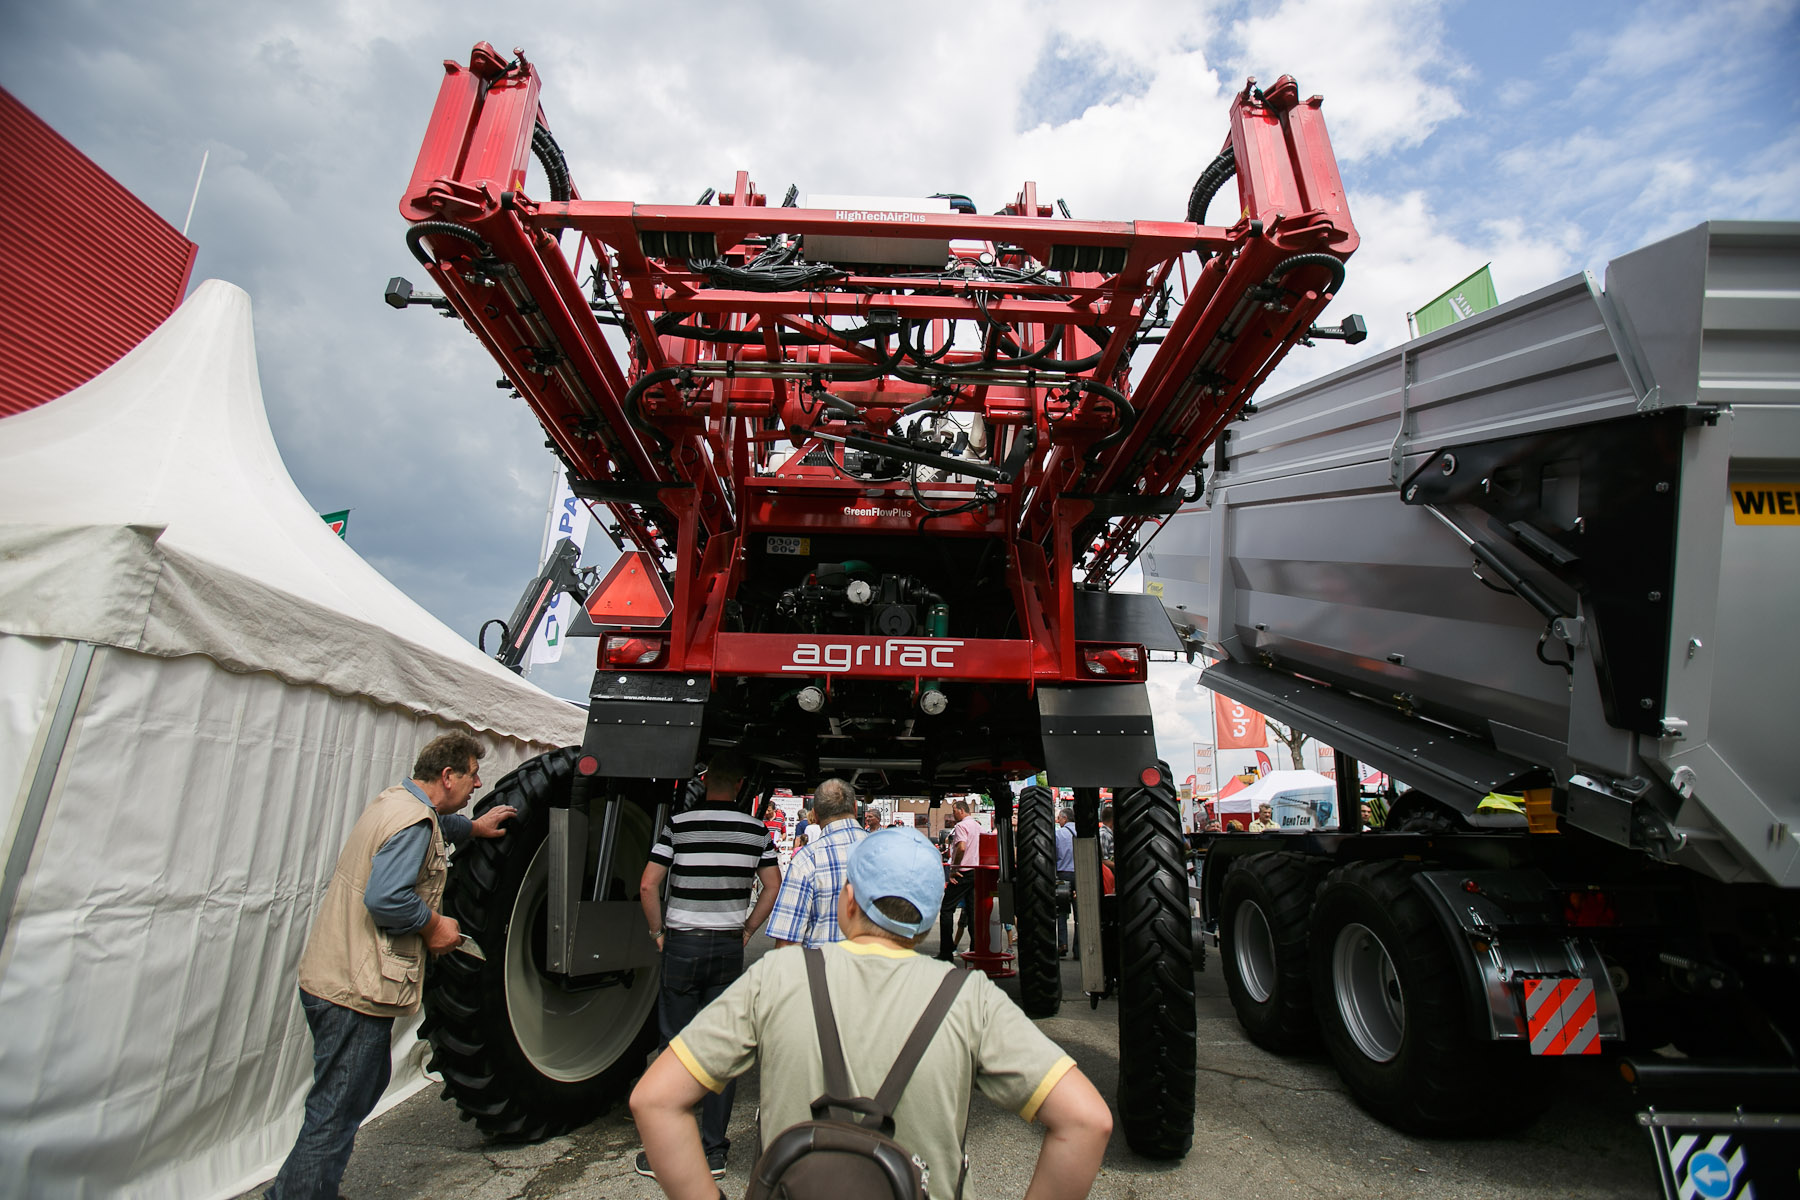 People admire heavy machinery at the 53rd agricultural fair Agra in Gornja Radgona, Slovenia, Aug. 22, 2015.